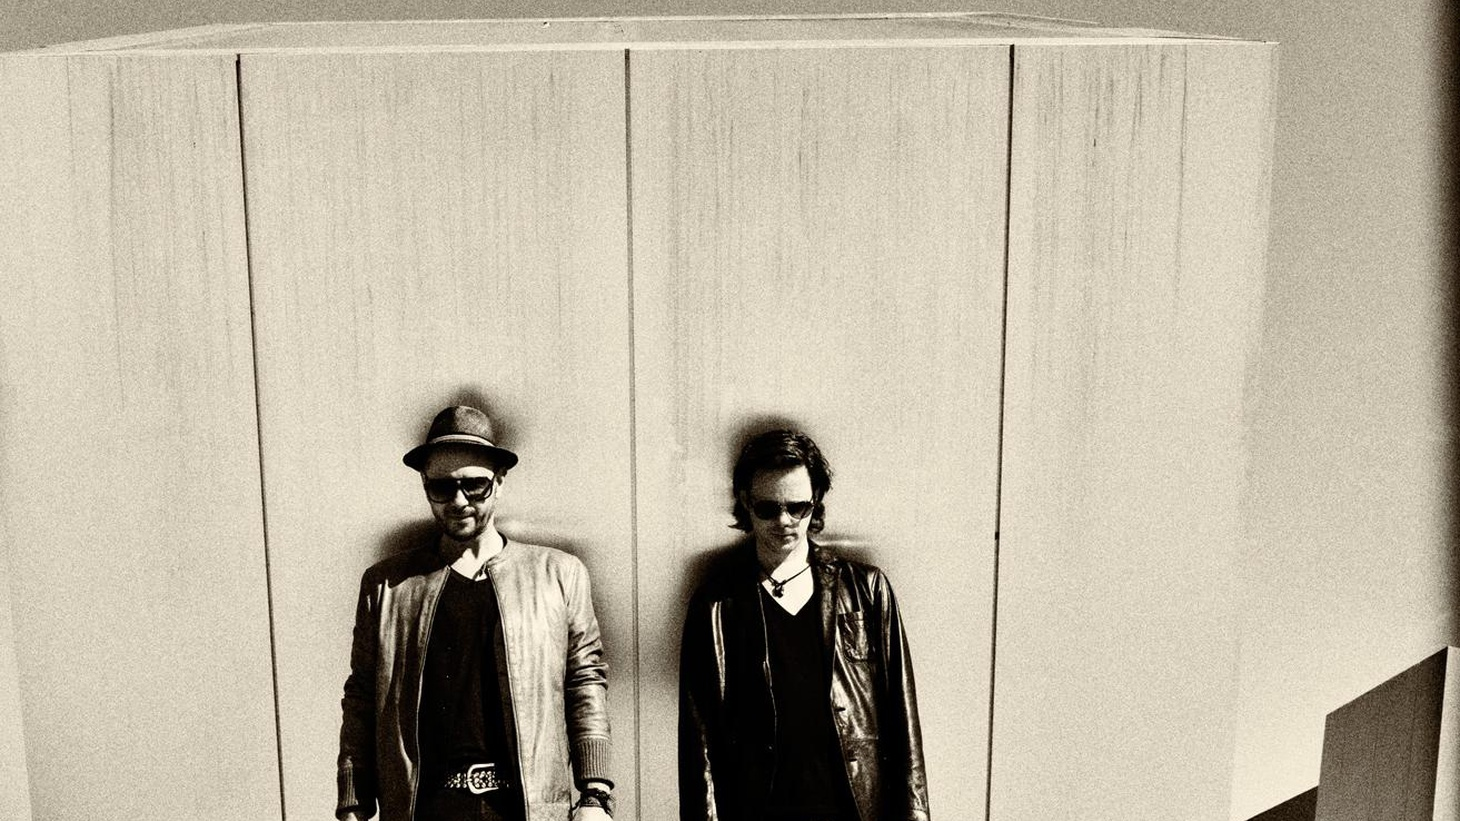 A mainstay on KCRW's Top 50 chart, Berlin-based beat-making duo Booka Shade create atmospheric and cinematic work.